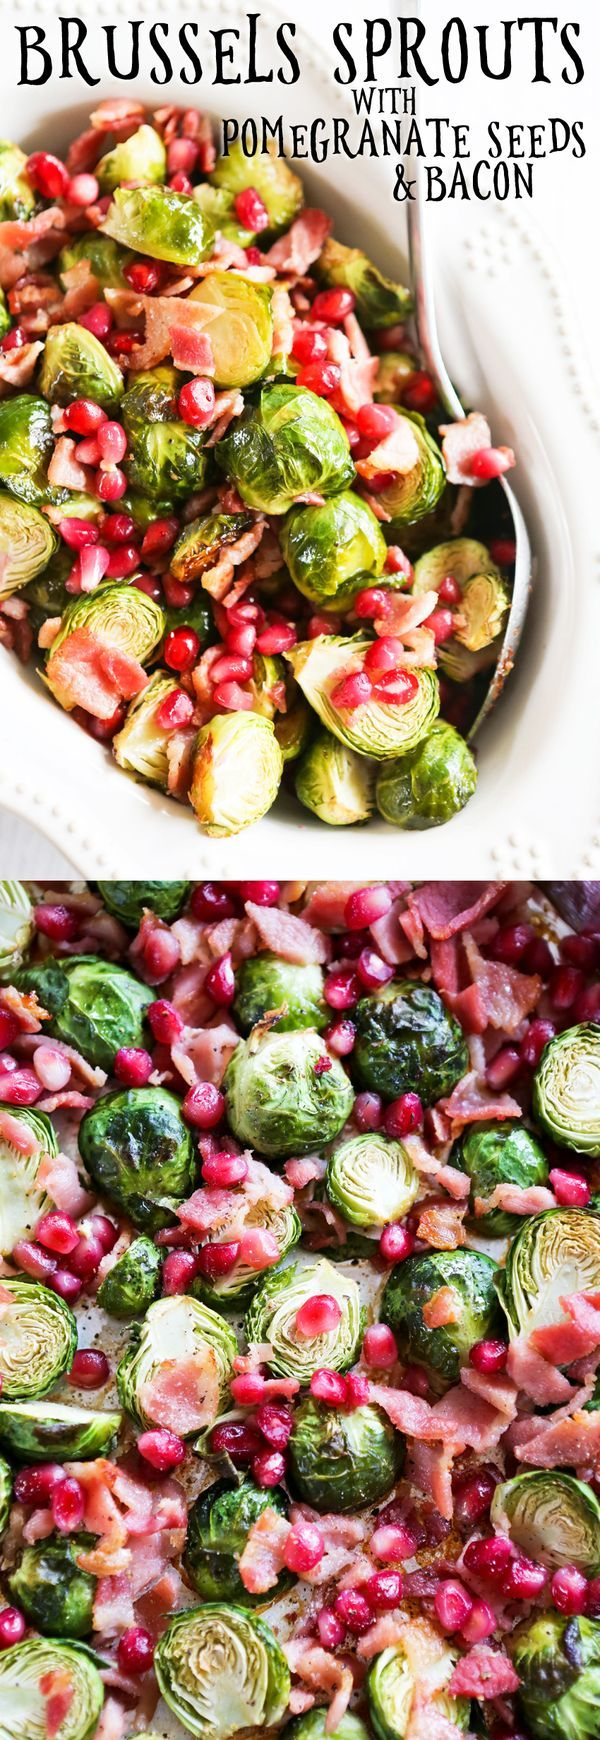 Brussels Sprouts with Pomegranate Seeds and Bacon | This delicious and simple little dish can be a salad, side, party food or snack! SO GOOD!